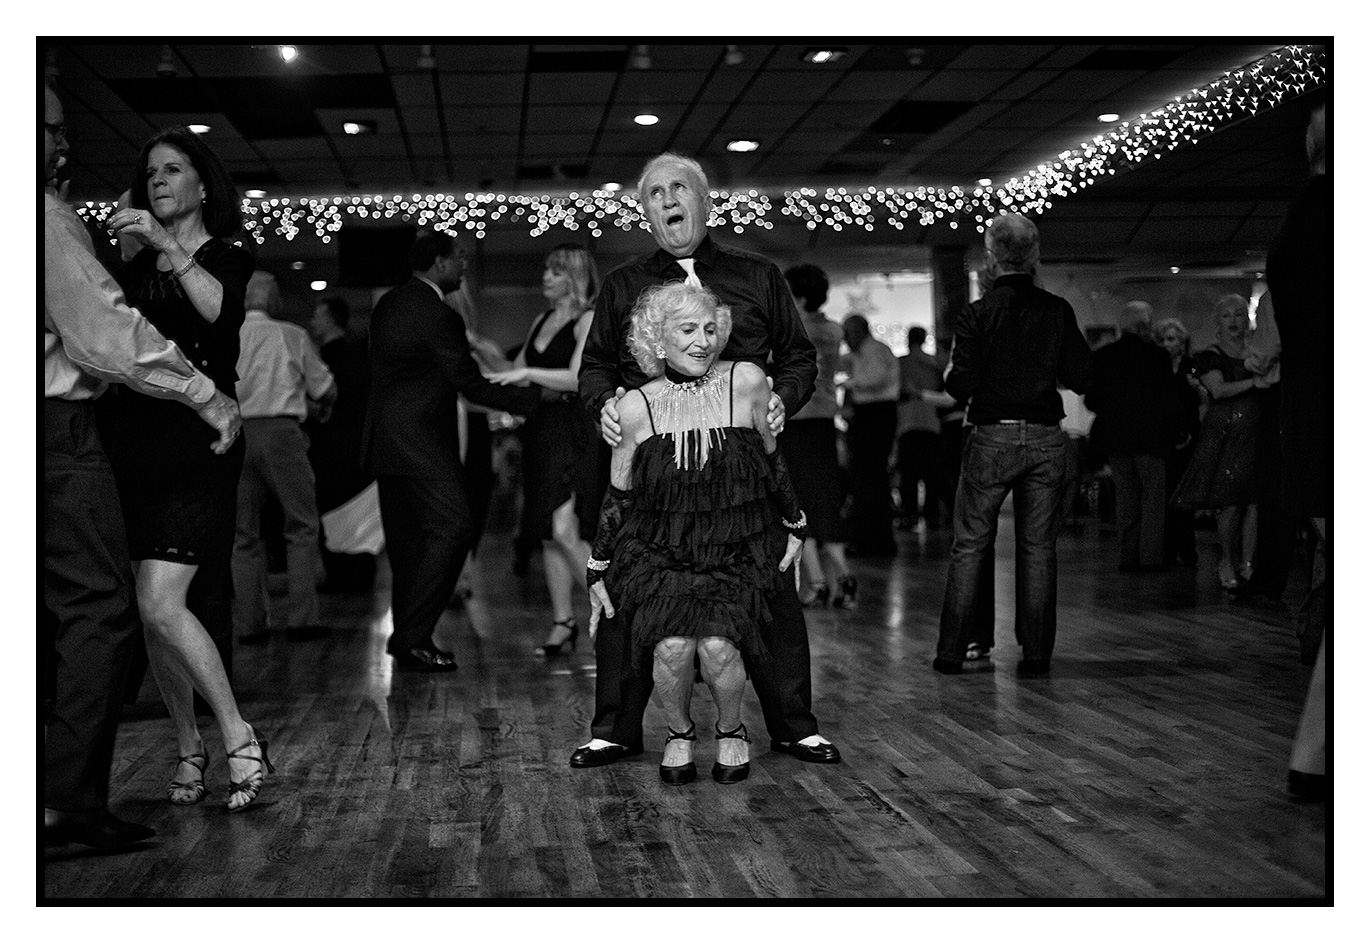 A couple of kids dance the night away ~ Open Night Ballroom Dancing ~ North Miami Beach